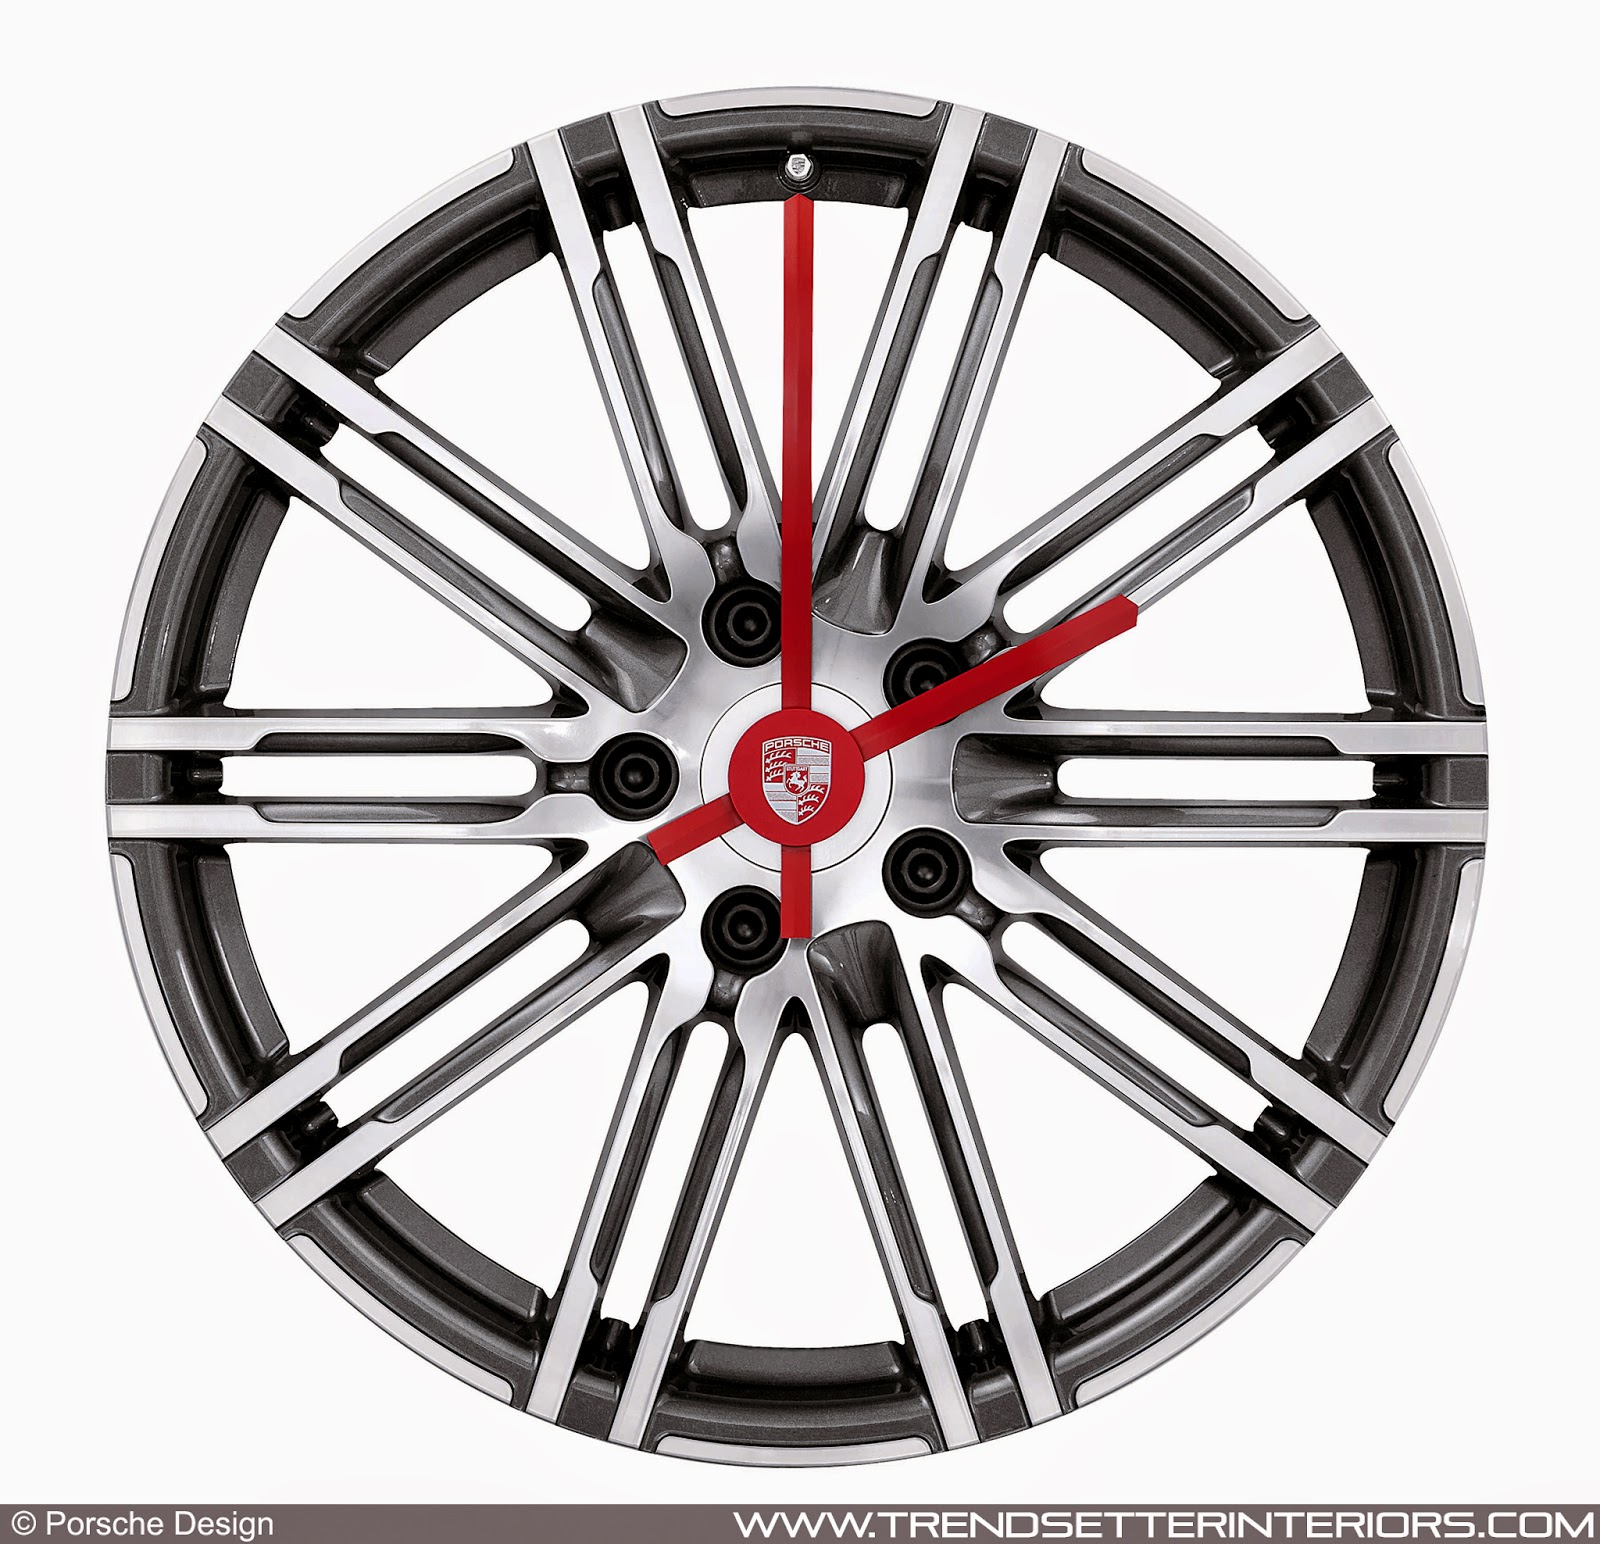 Trendsetter Interiors Porsche Icons For The Home Wall Clock Made From 20 Inch 911 Turbo Rims